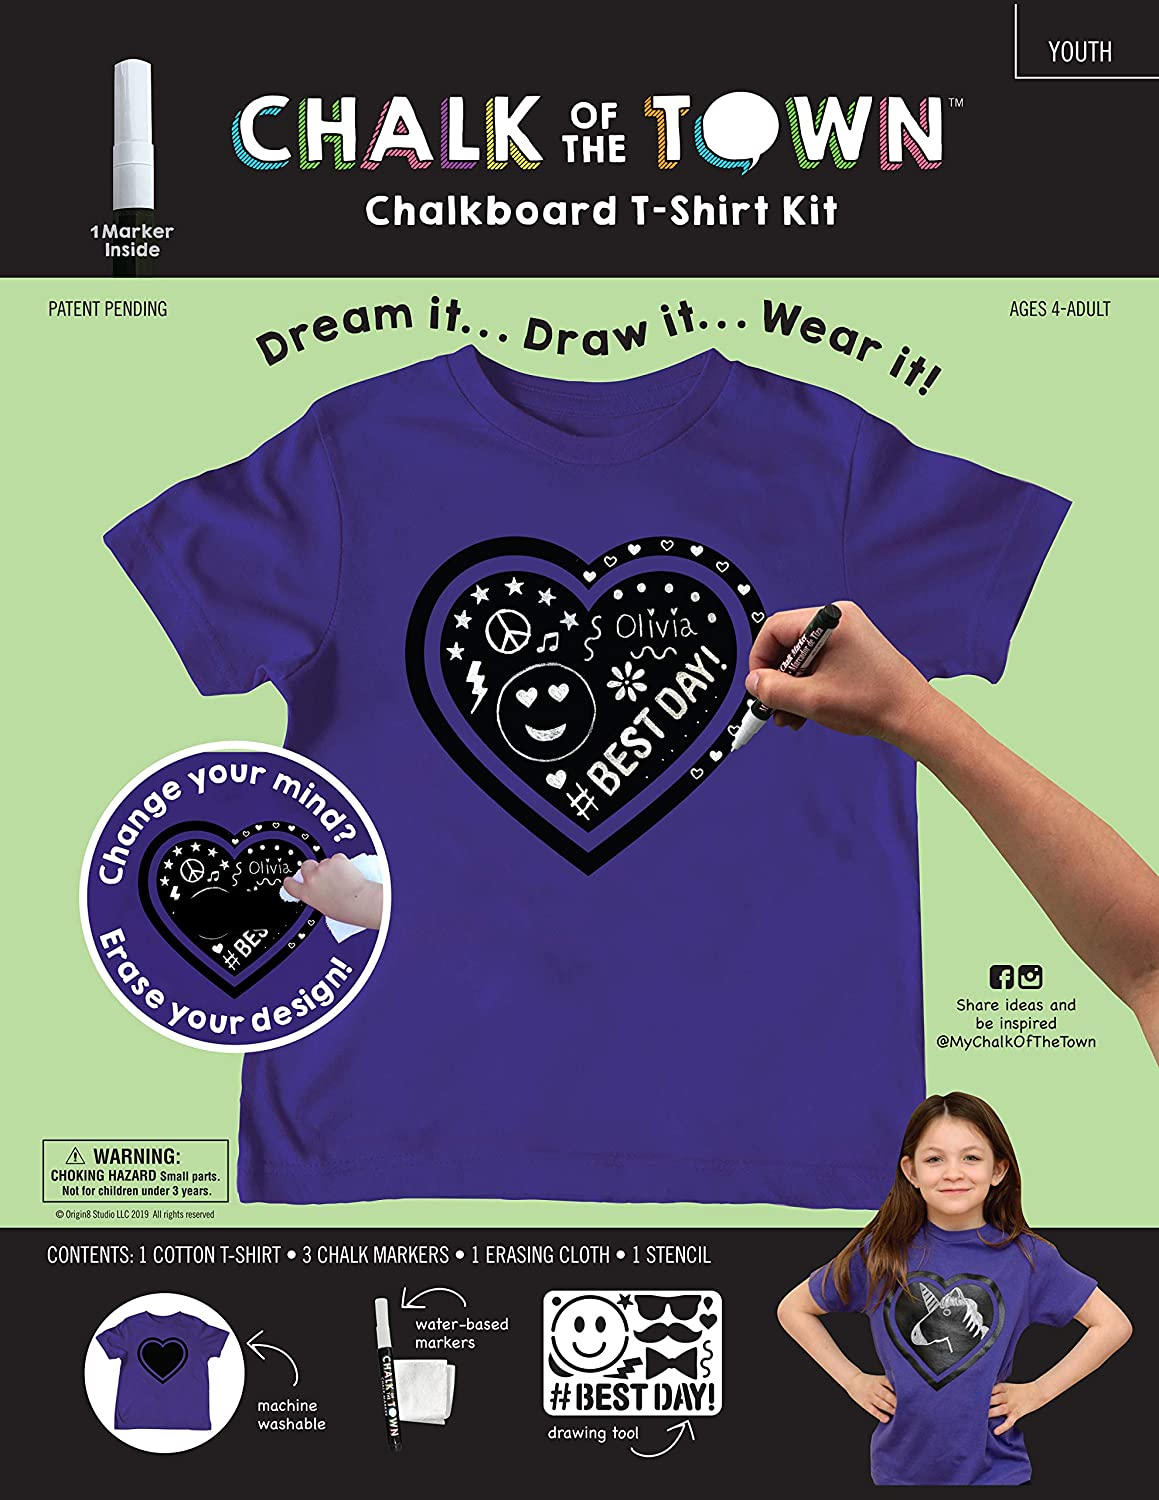 Chalk of the Town Chalkboard T-Shirt Kit for Kids Short Sleeve Purple Heart with 1 Chalk Marker and Stencil Youth Extra-Small